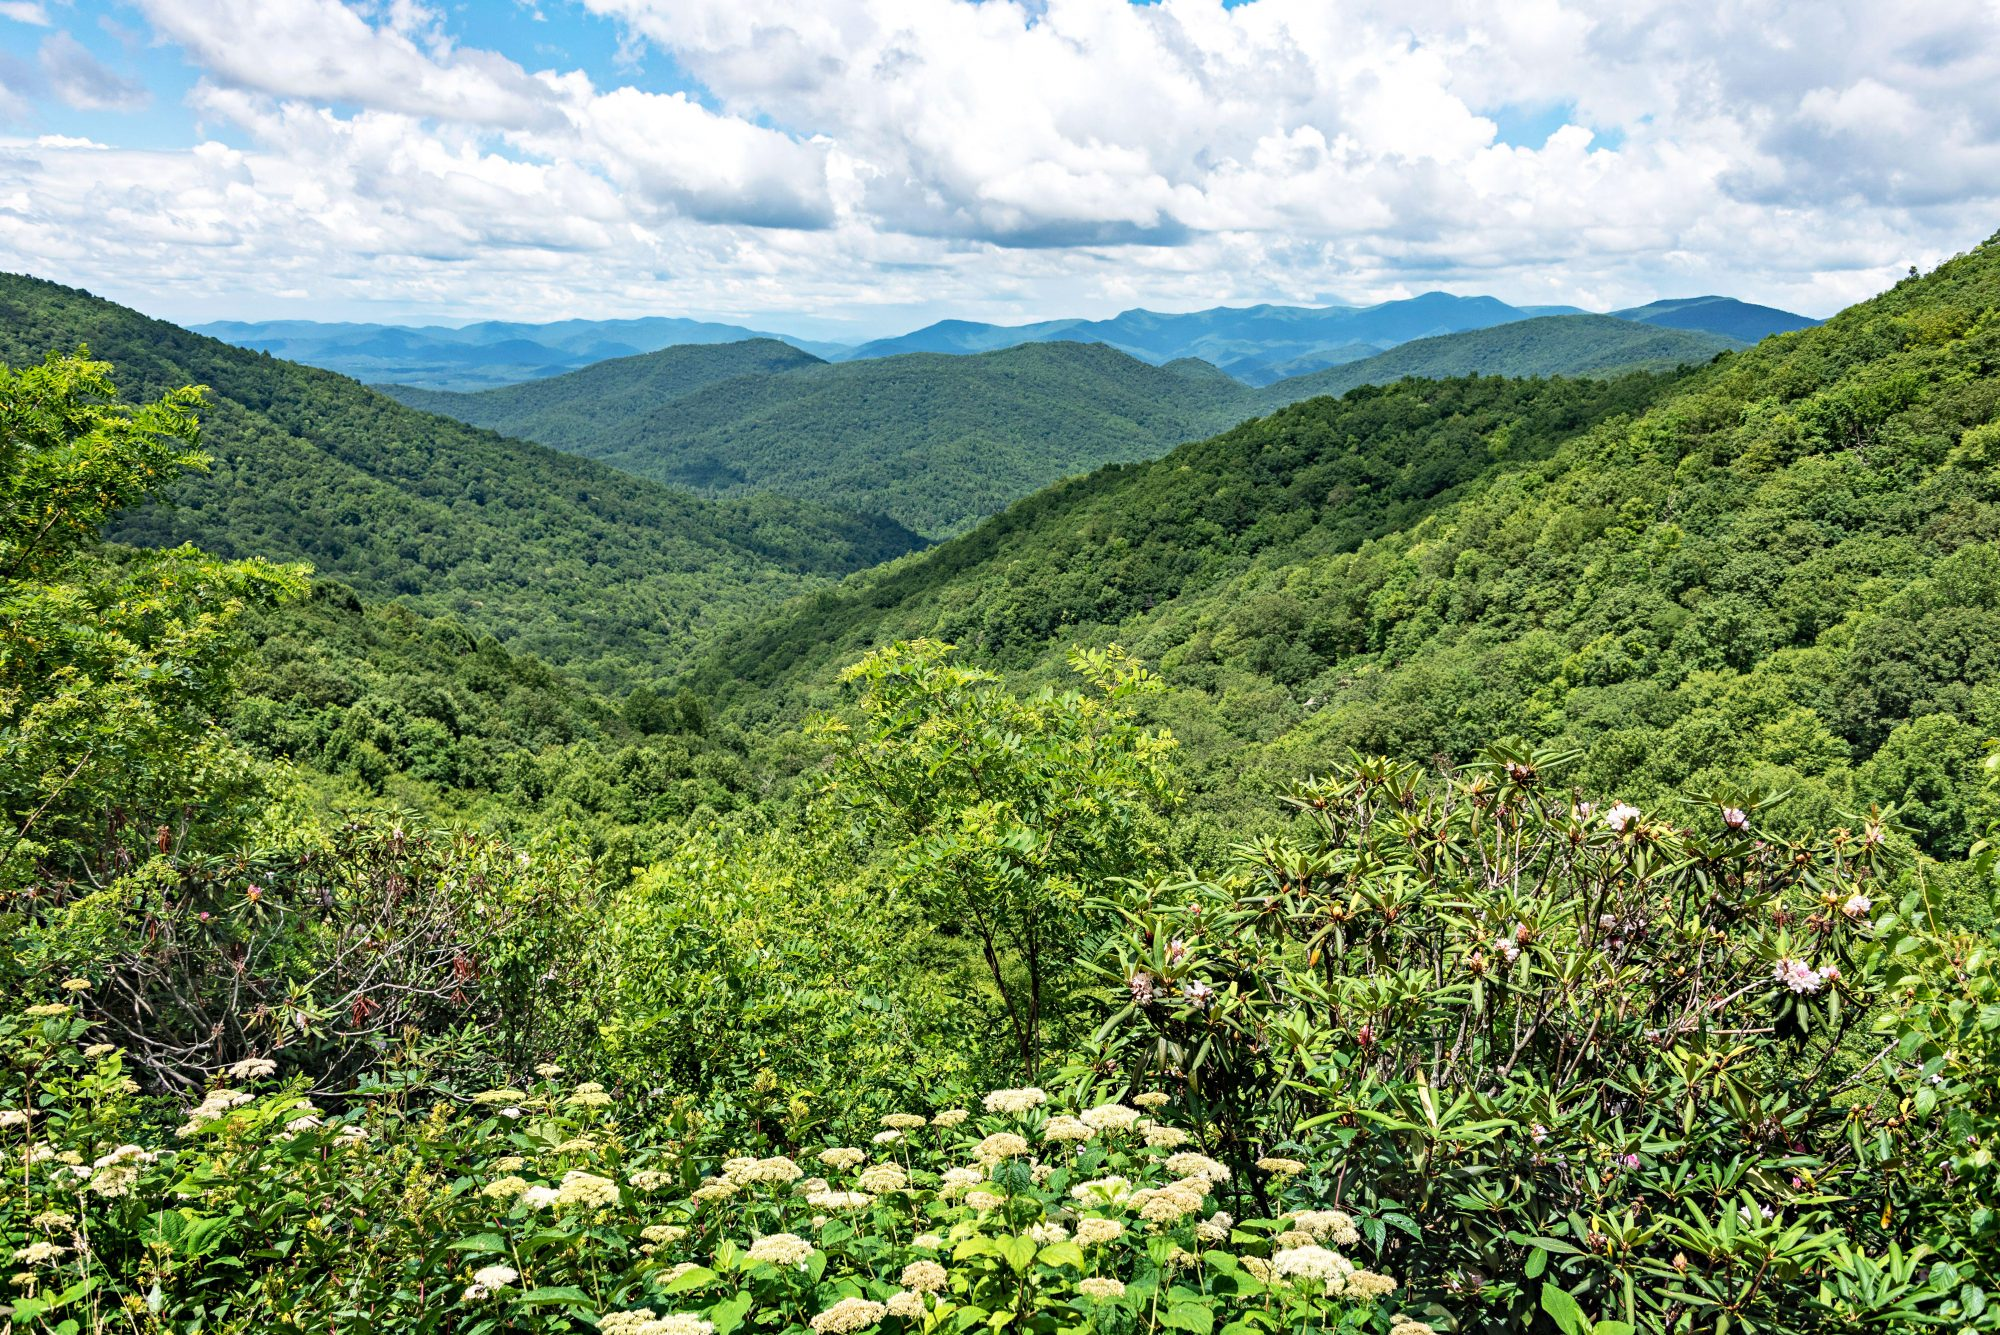 Chattahoochee-Oconee National Forests